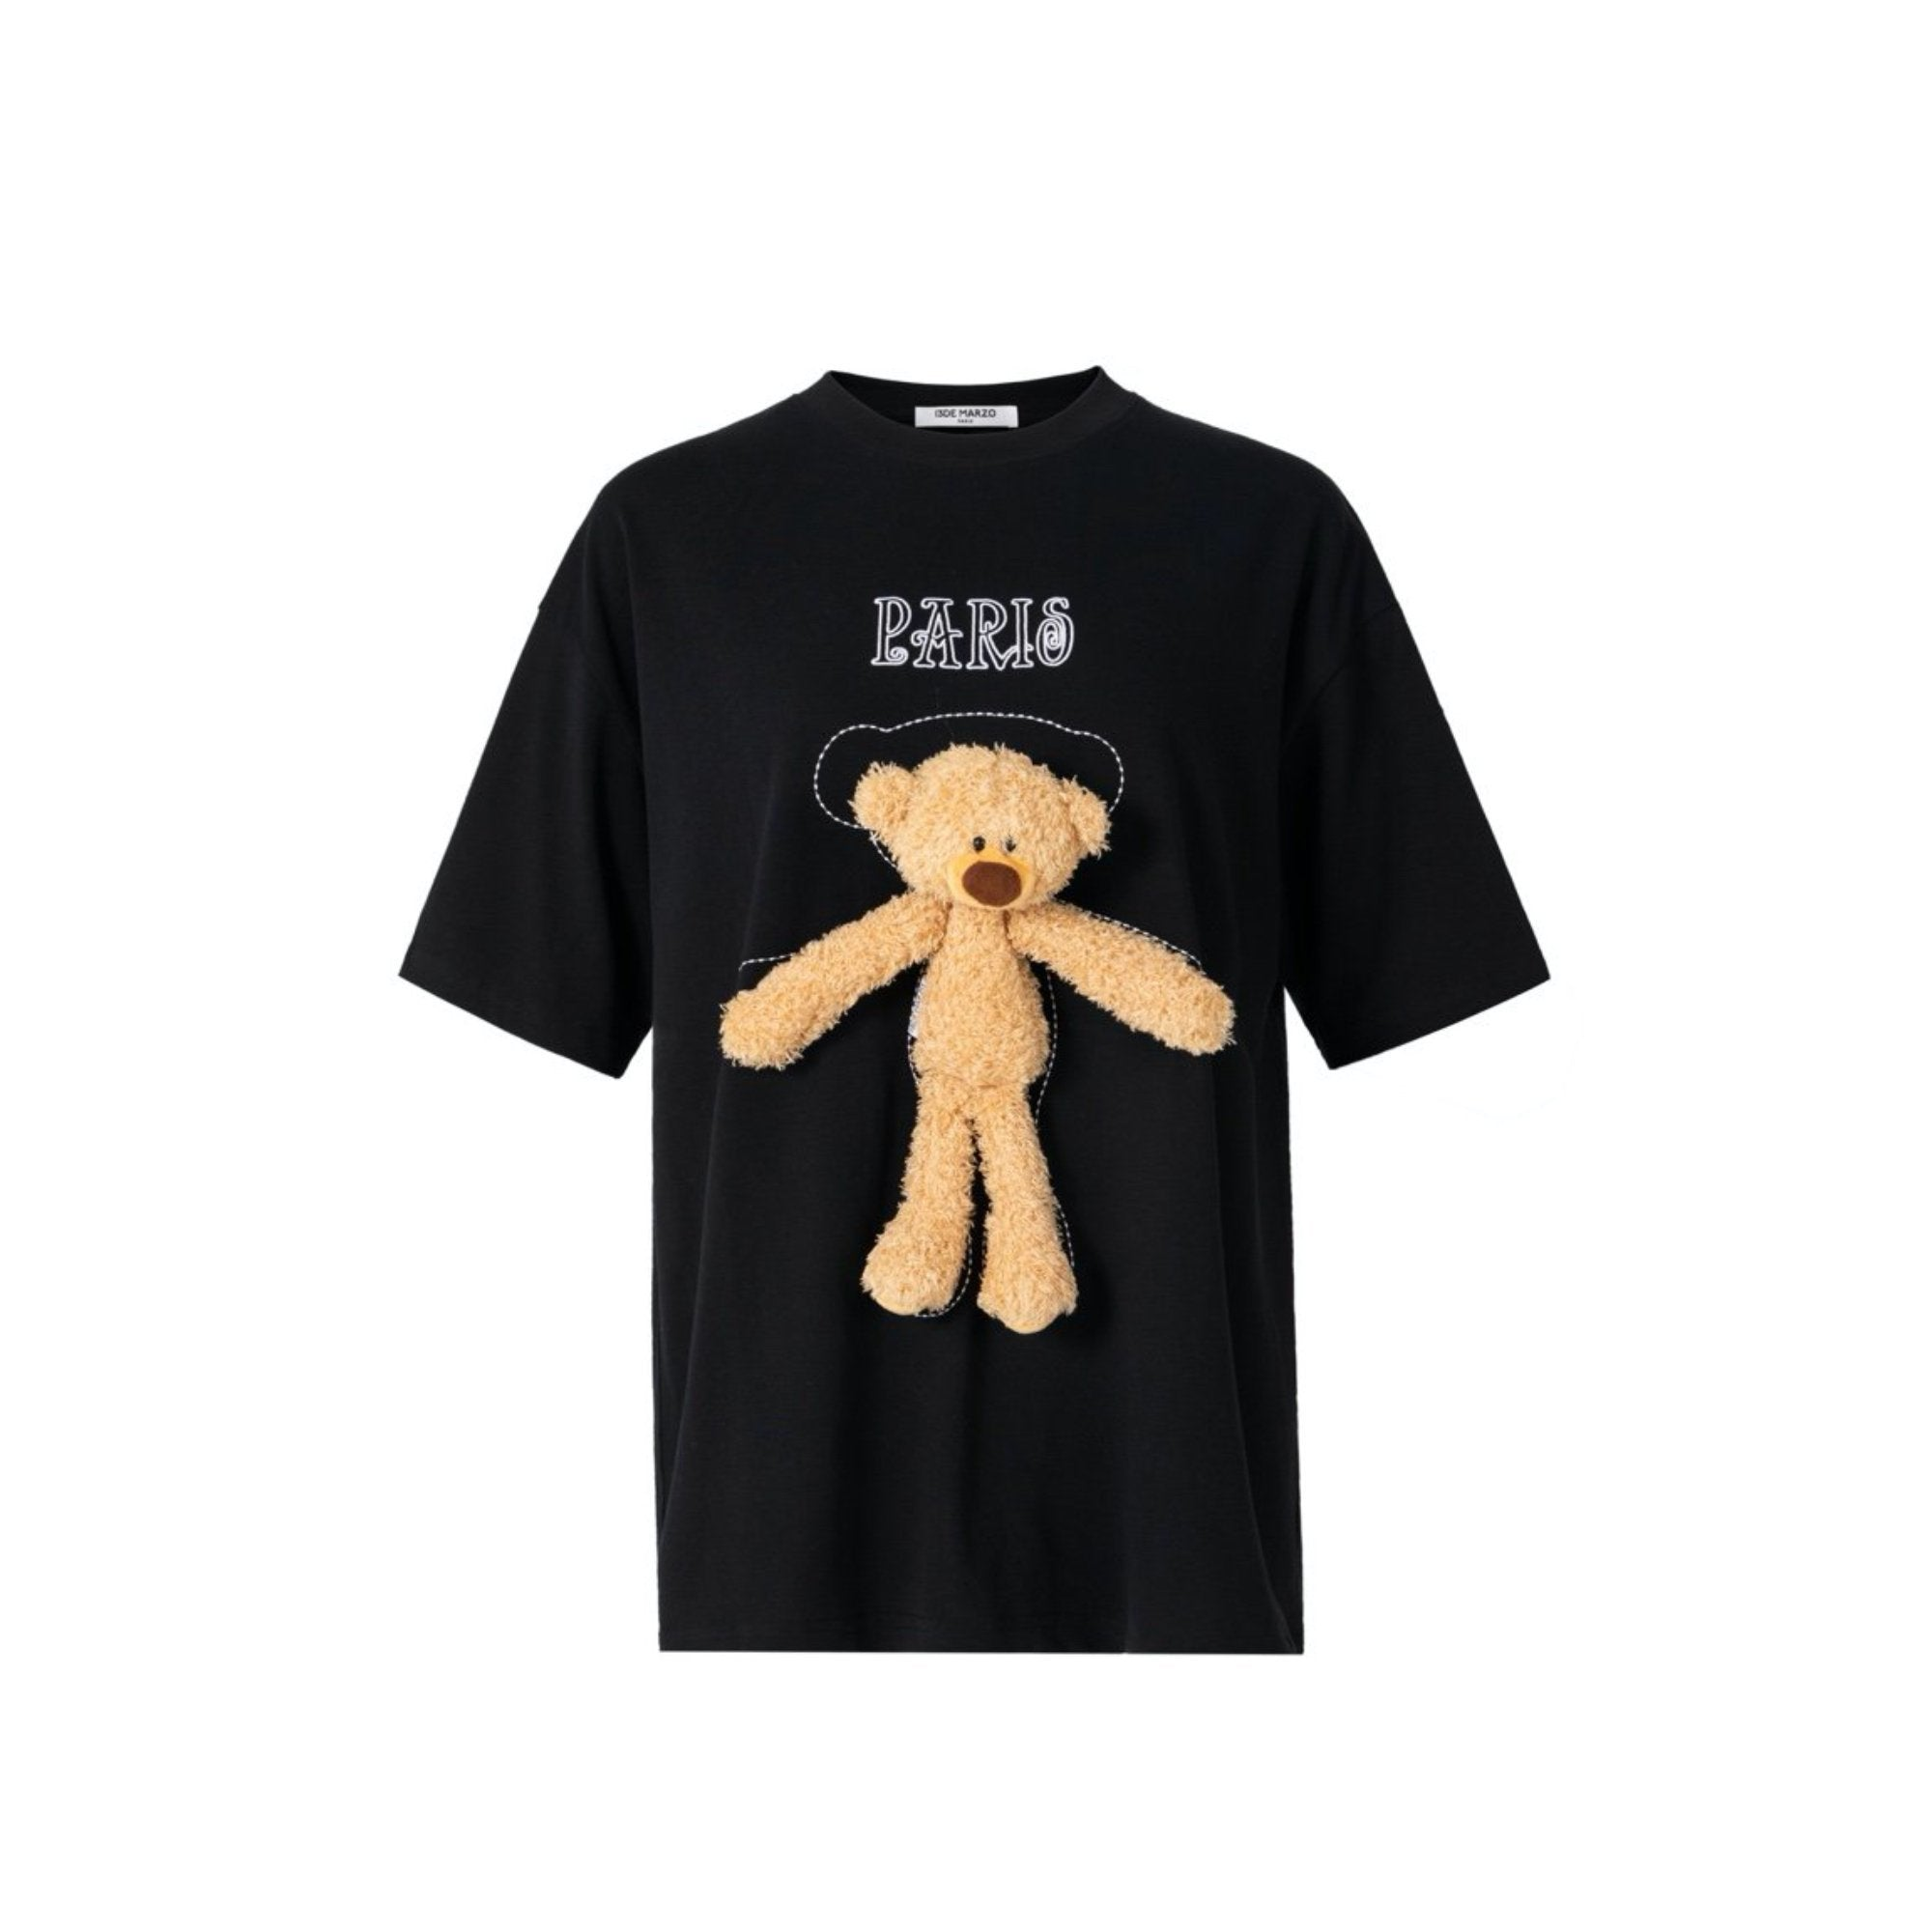 13 DE MARZO Tiny Teddy Bear Tee Black | MADA IN CHINA